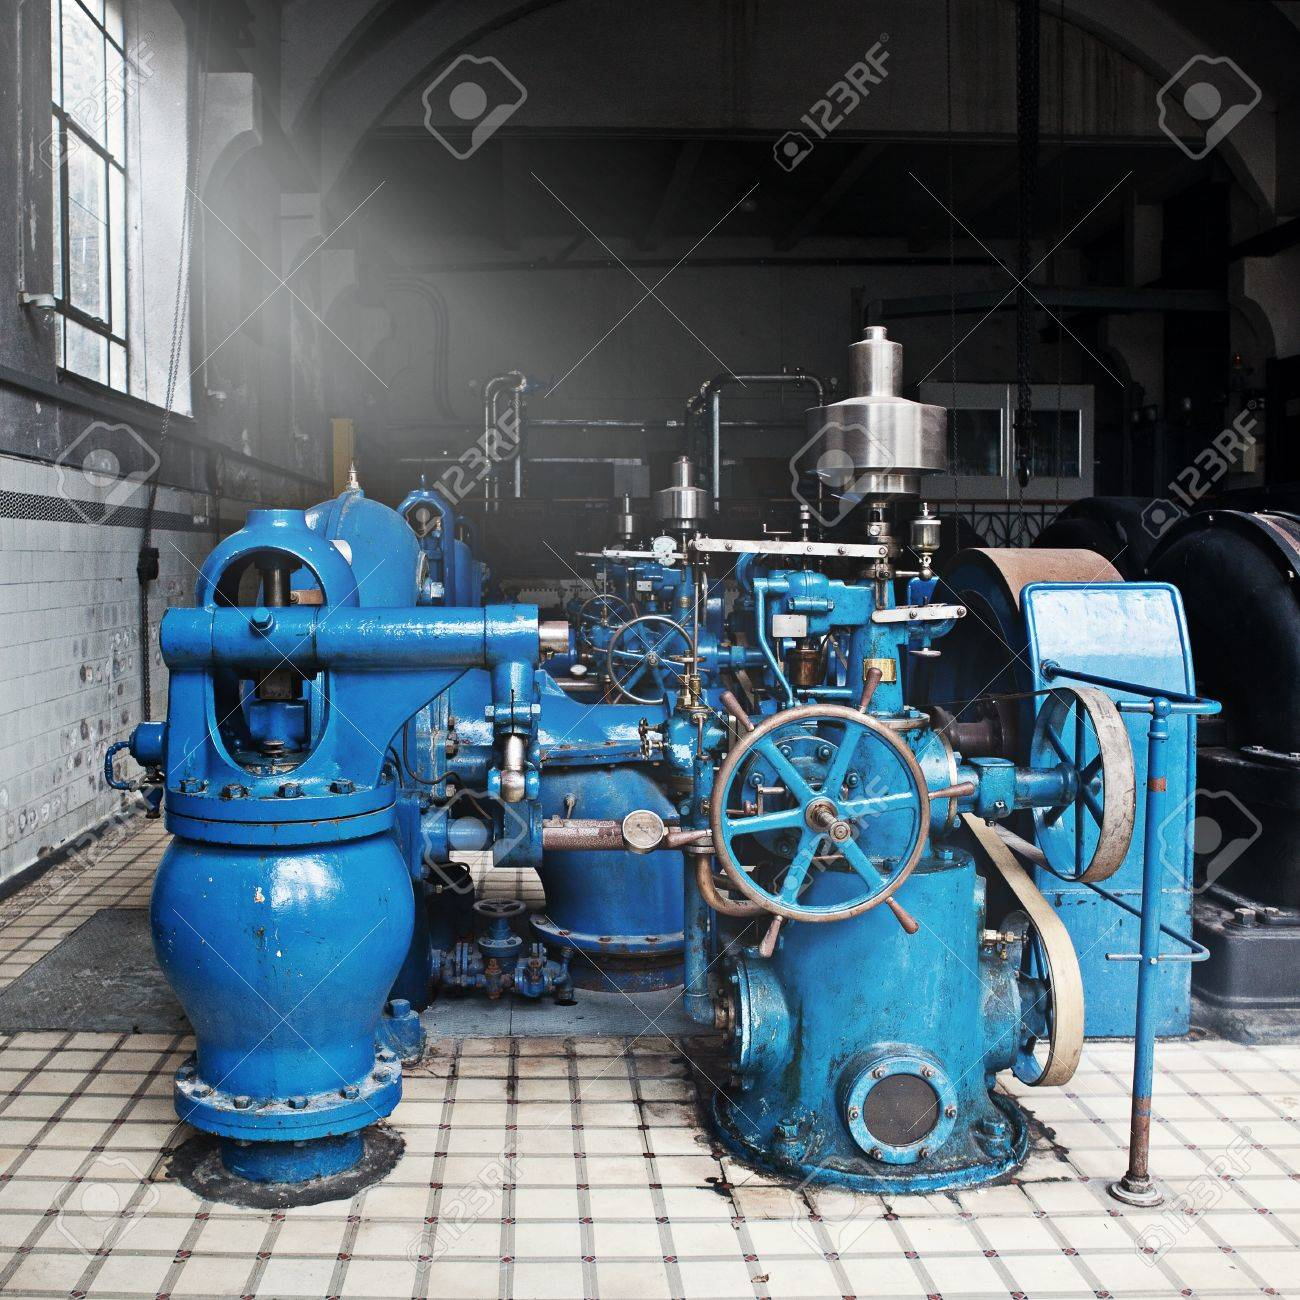 Heavy Water Pumping Machinery In Vintage Industrial Water Cleaning ...